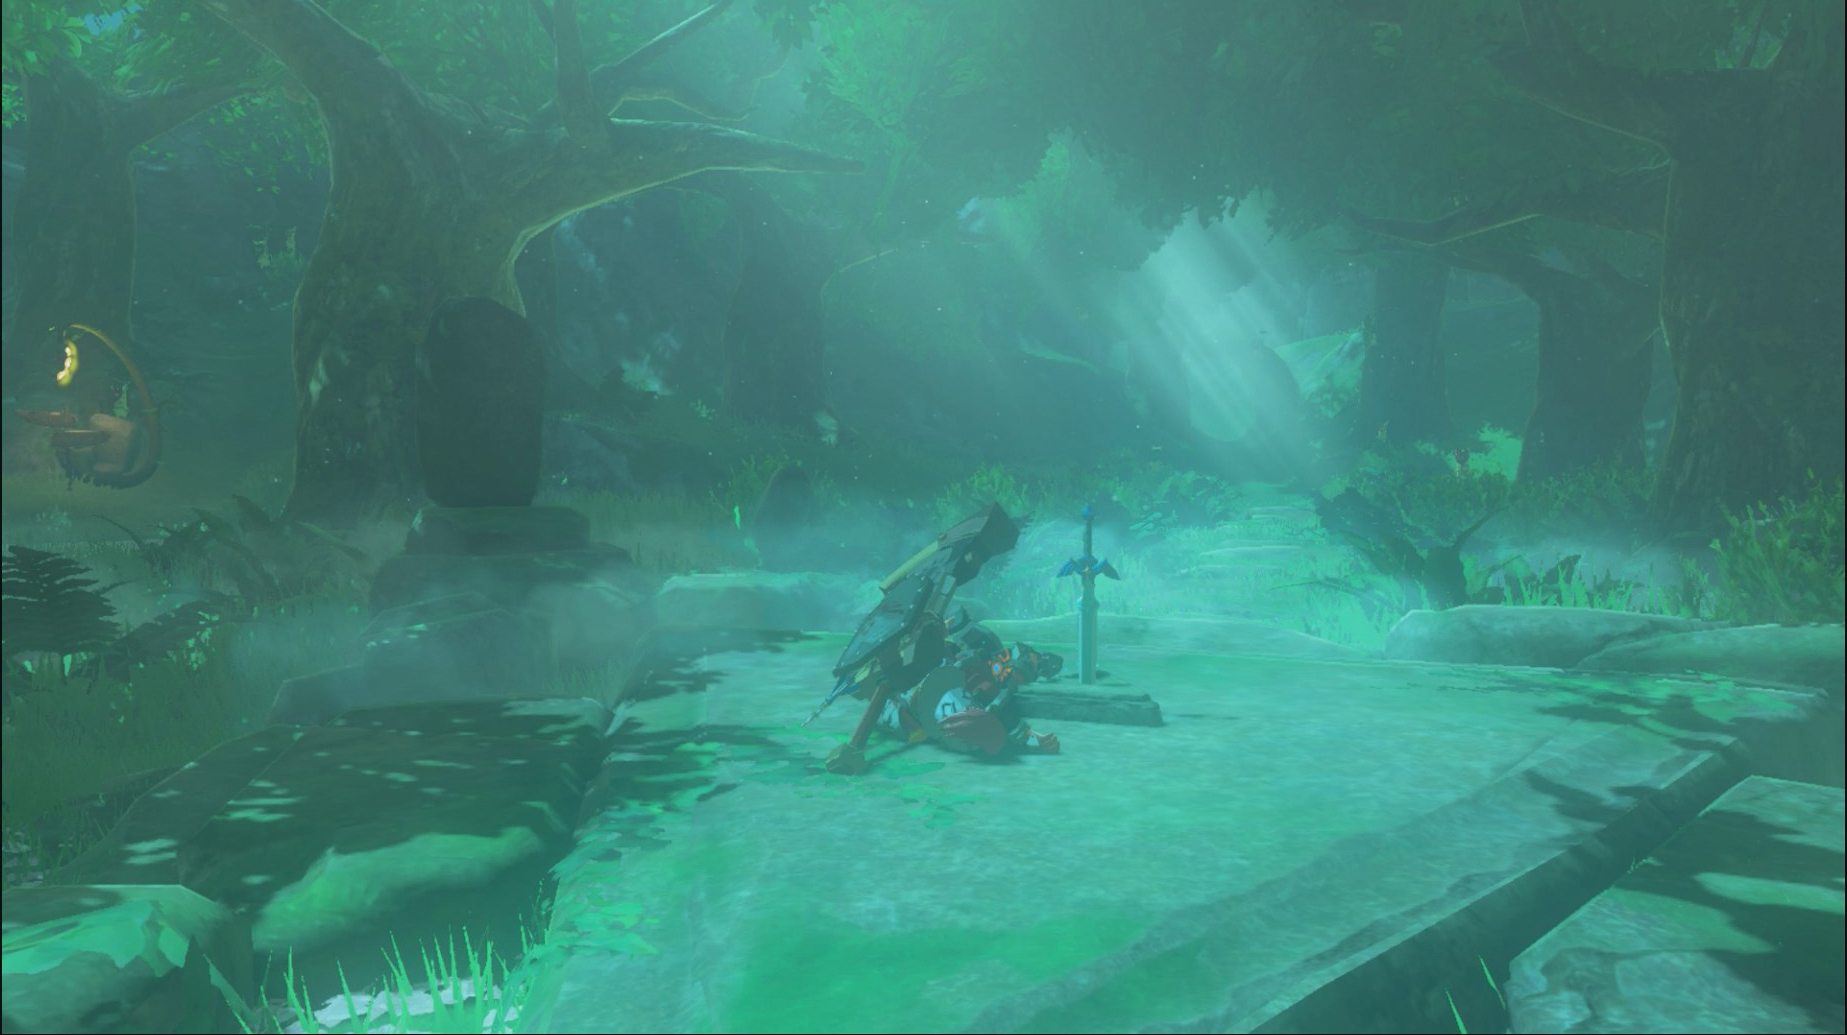 How Strong Is The Master Sword In The Legend Of Zelda Breath Of